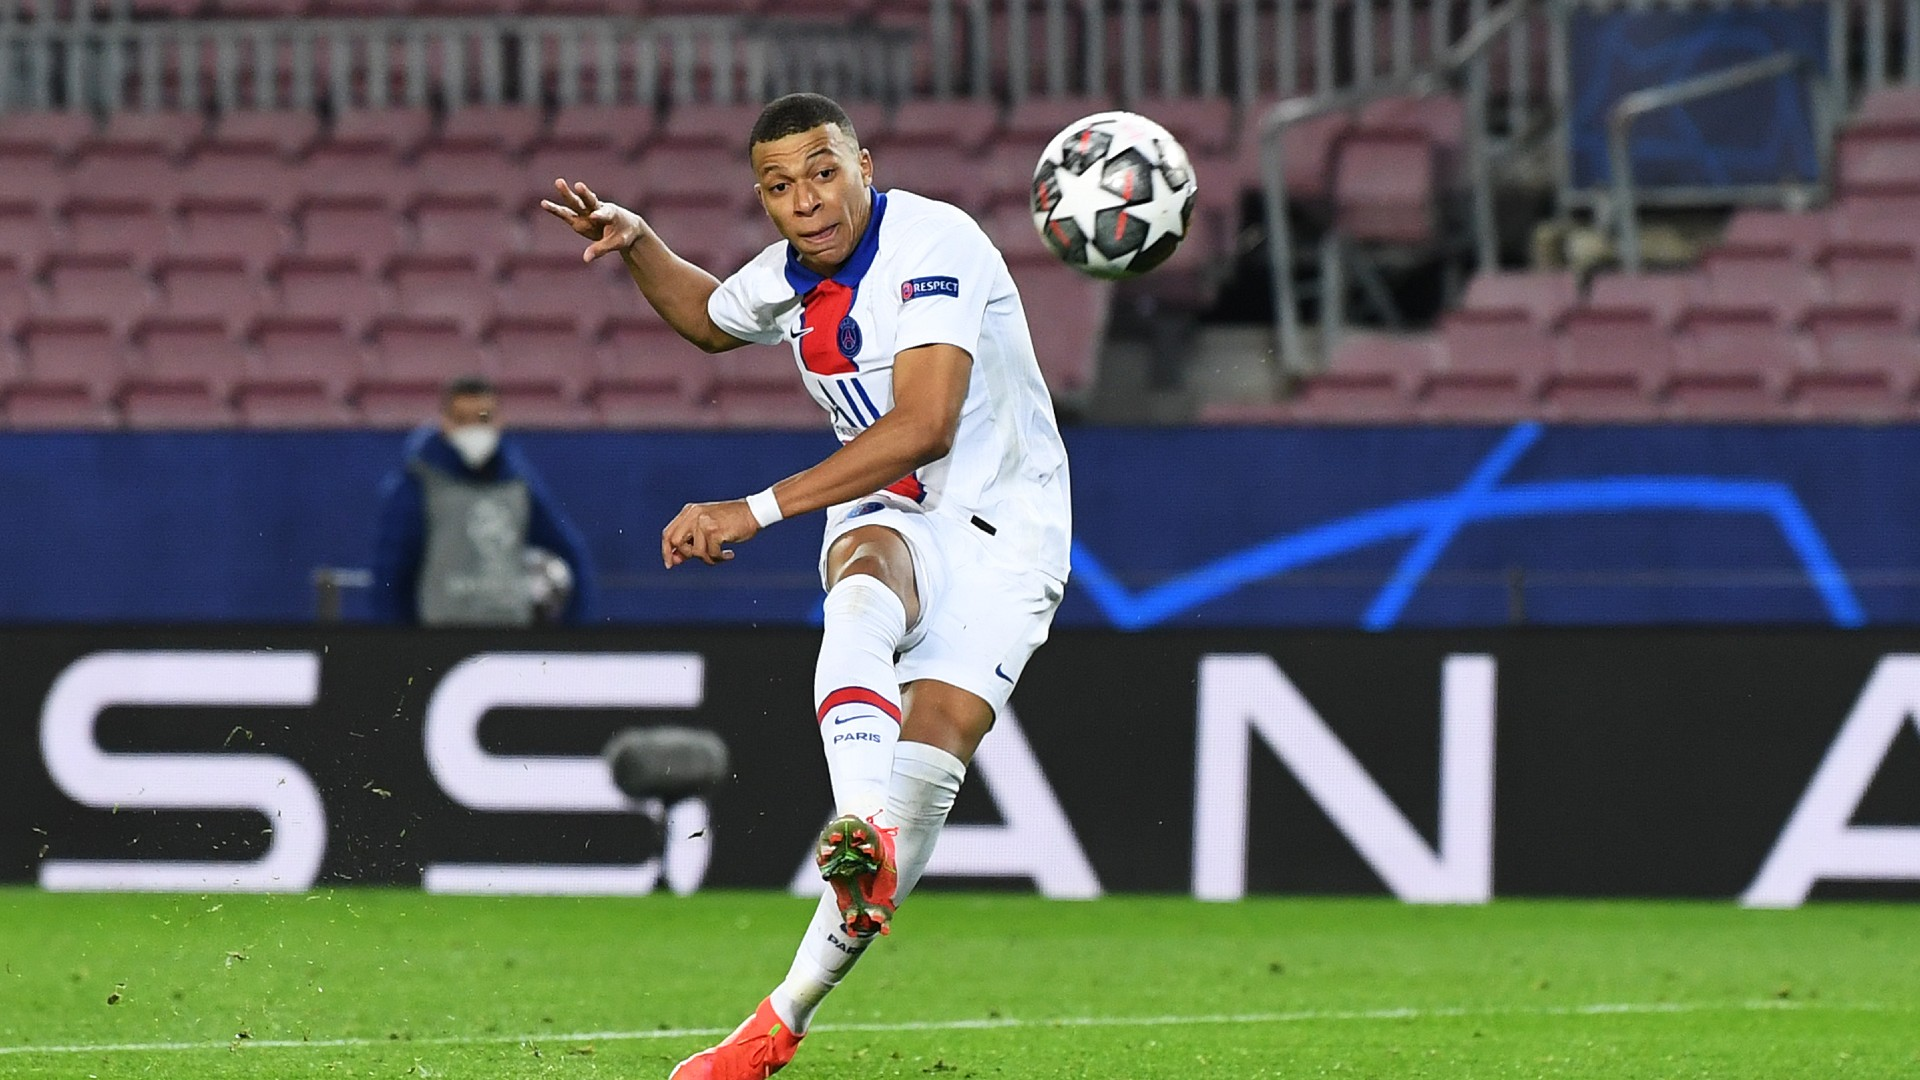 'Shark' Mbappe will do everything to push Messi and Ronaldo aside - Tuchel